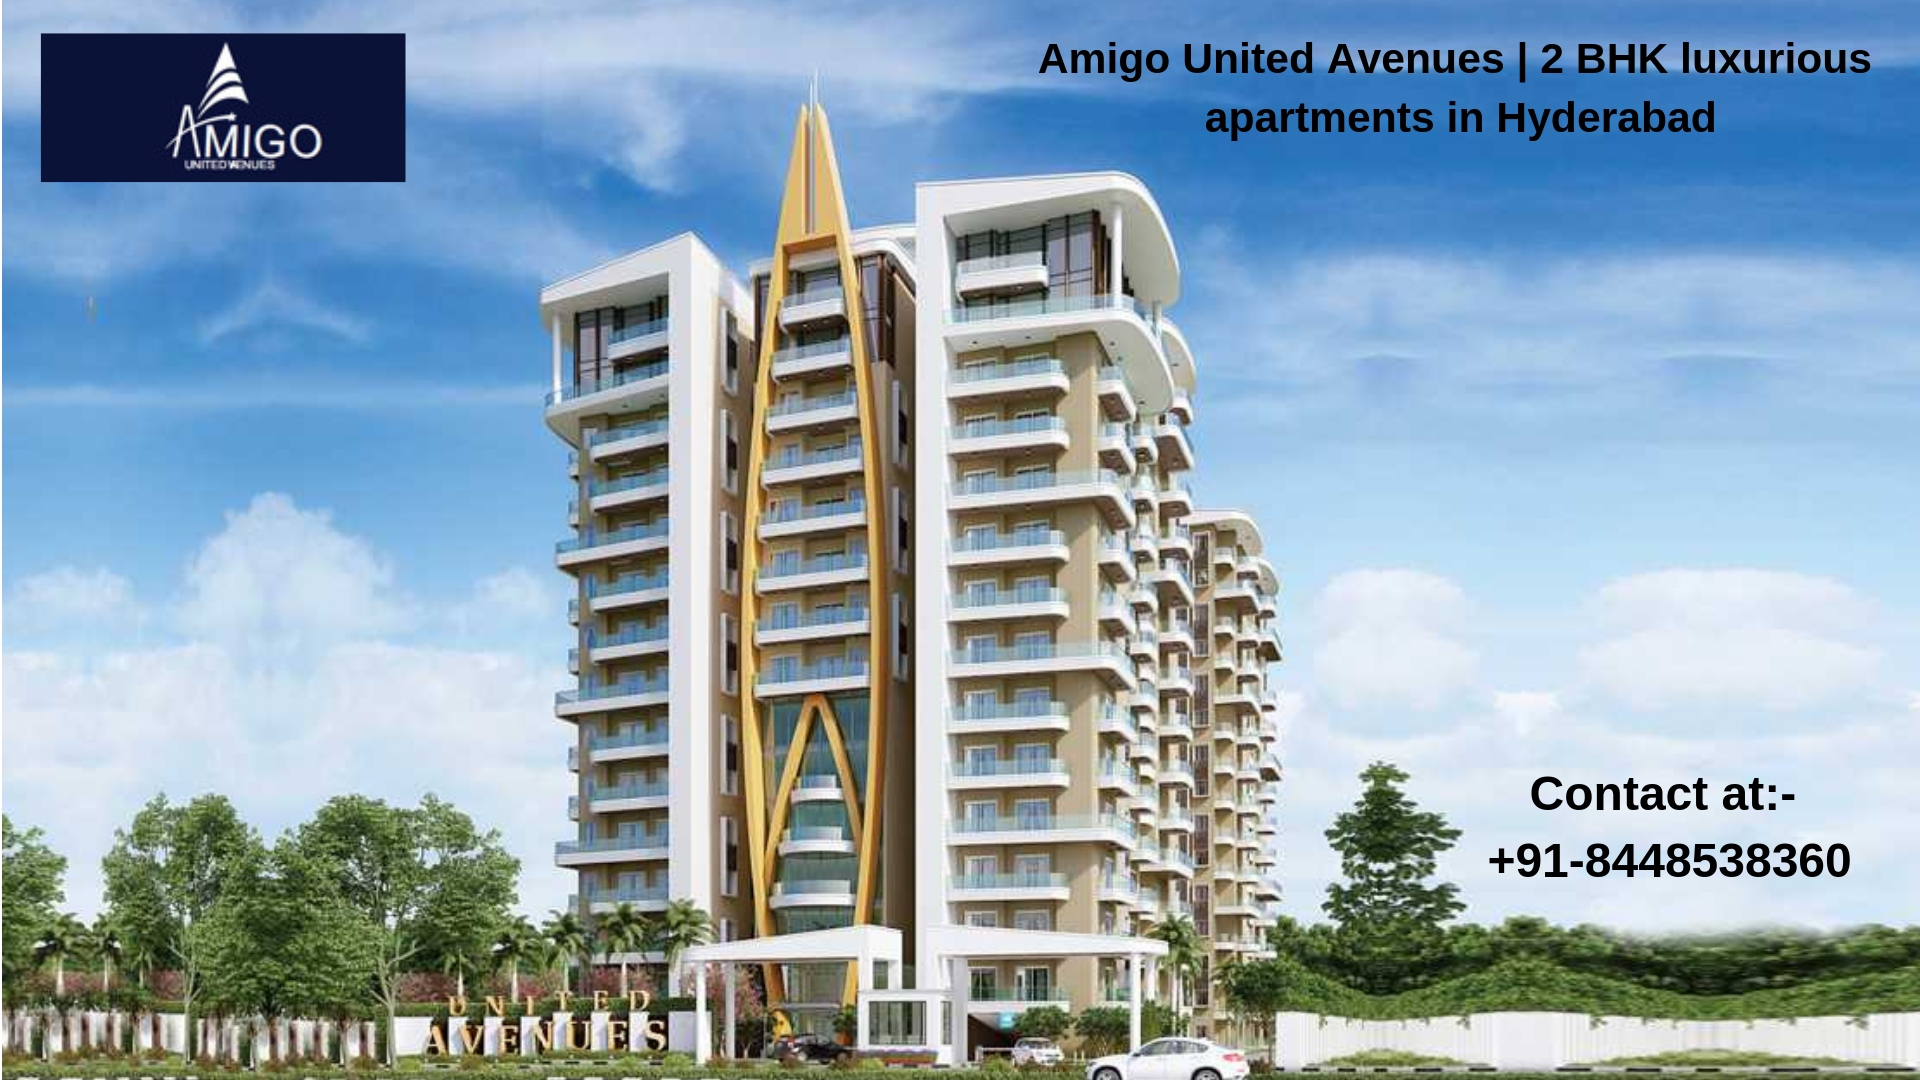 Amigo United Avenues by Amigo Group | Apartments for sale -Real Estate-For Sell-Flats for Sale-Hyderabad